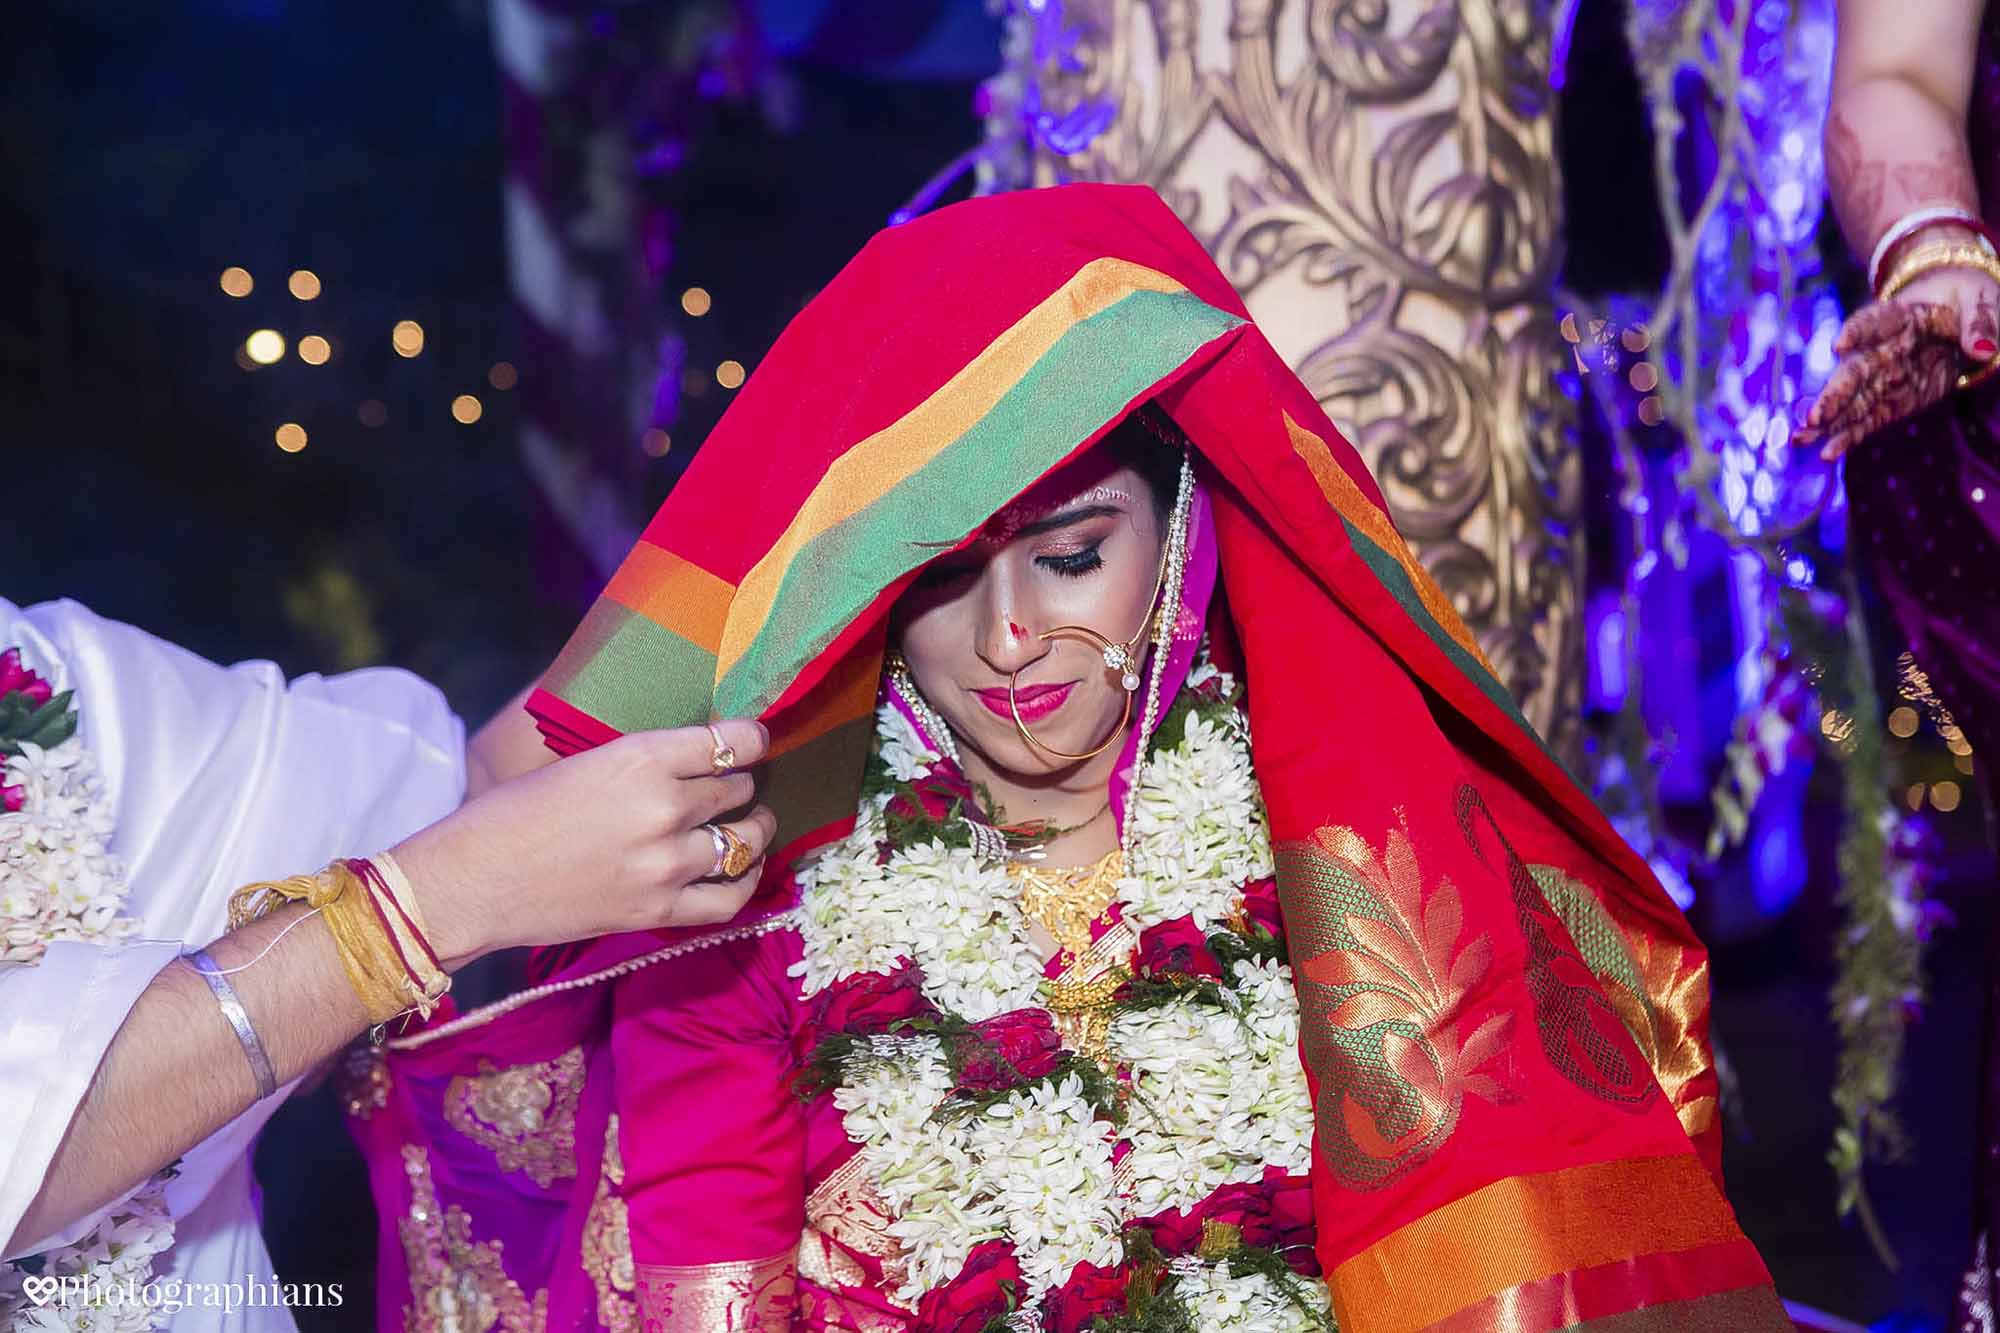 Bengali_Wedding_Photography_Kolkata_Photographians_153